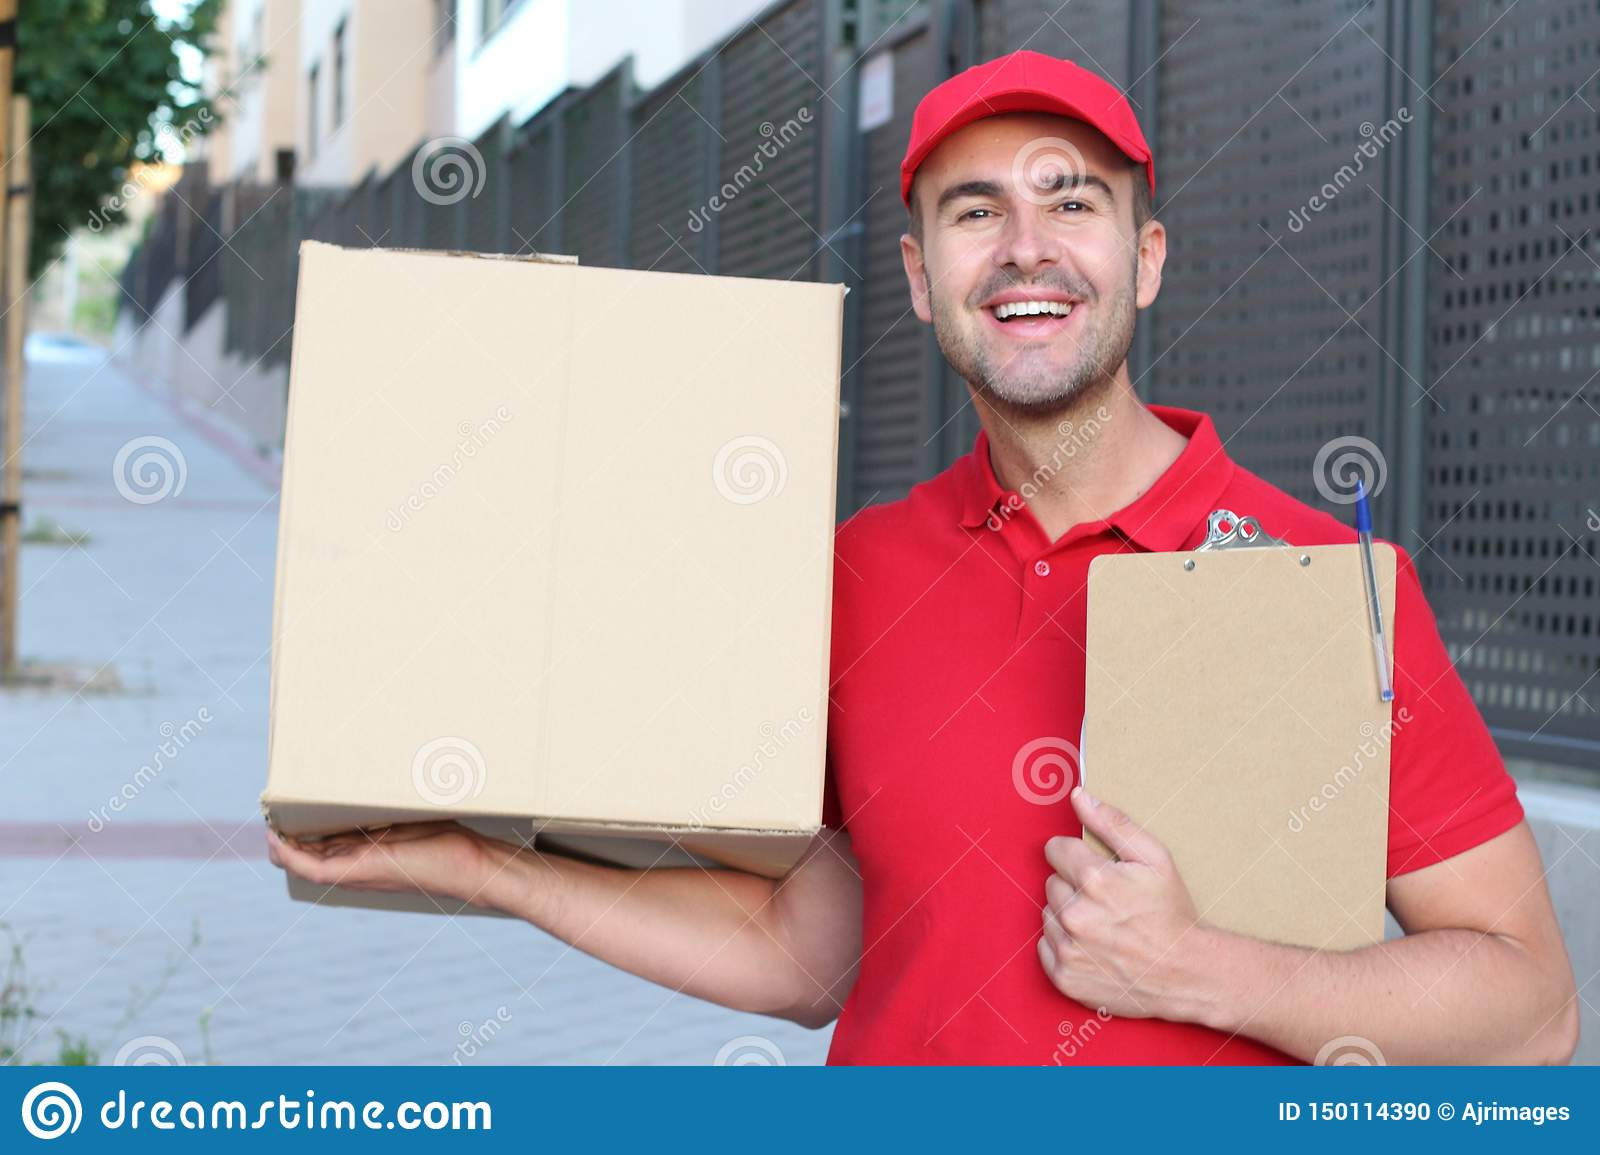 Professional delivery man smiling at work